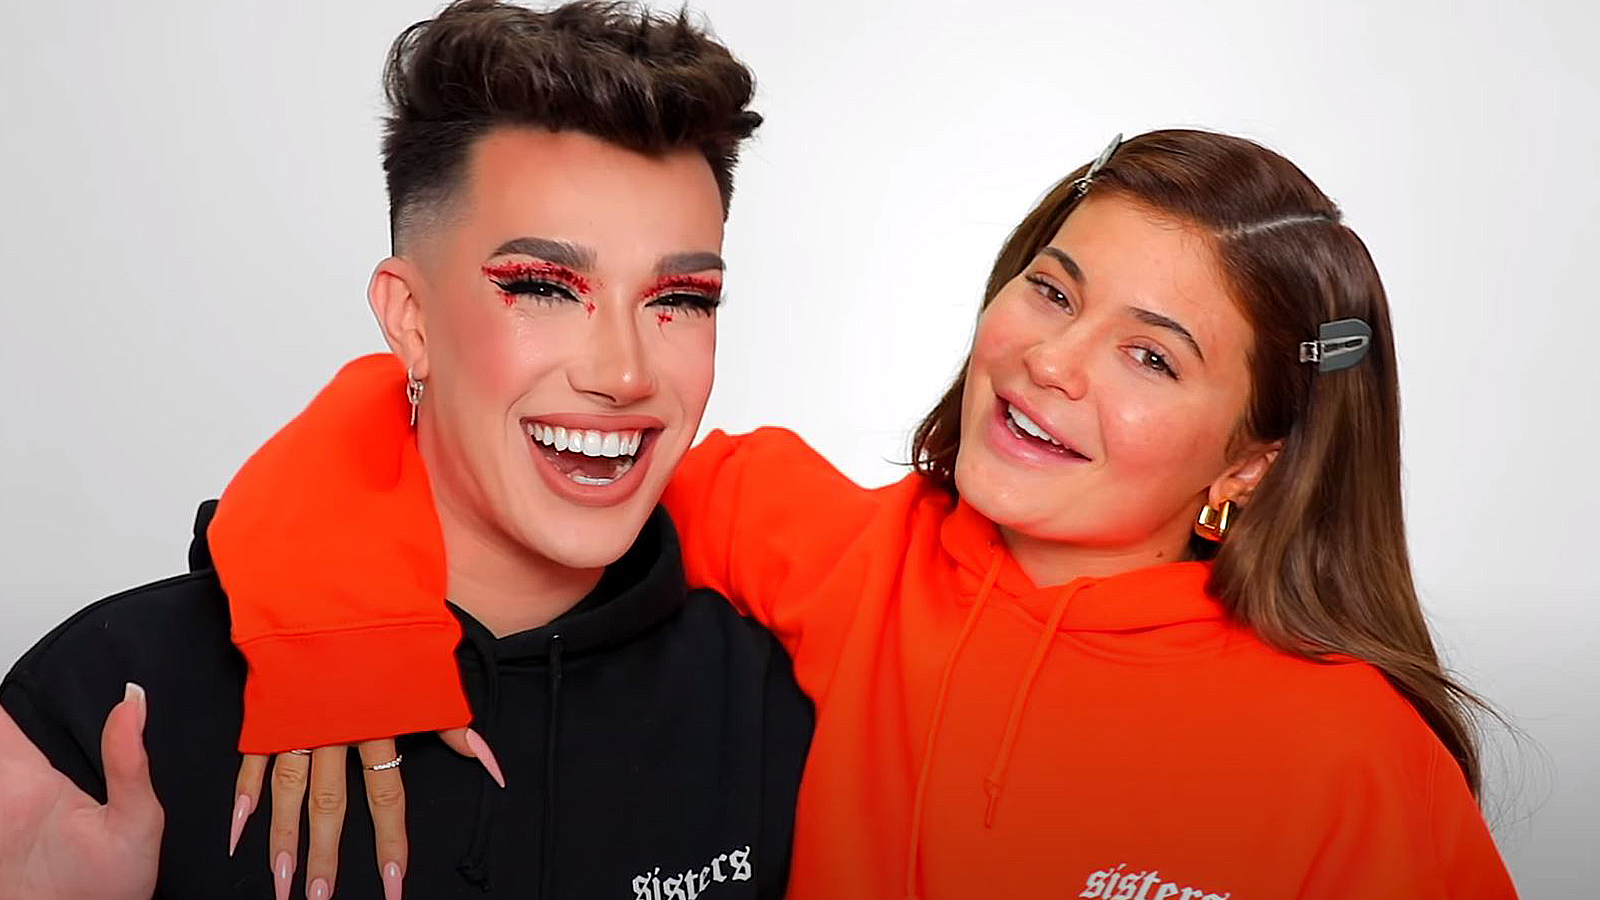 Kylie Jenner and James Charles hug during a YouTube video.